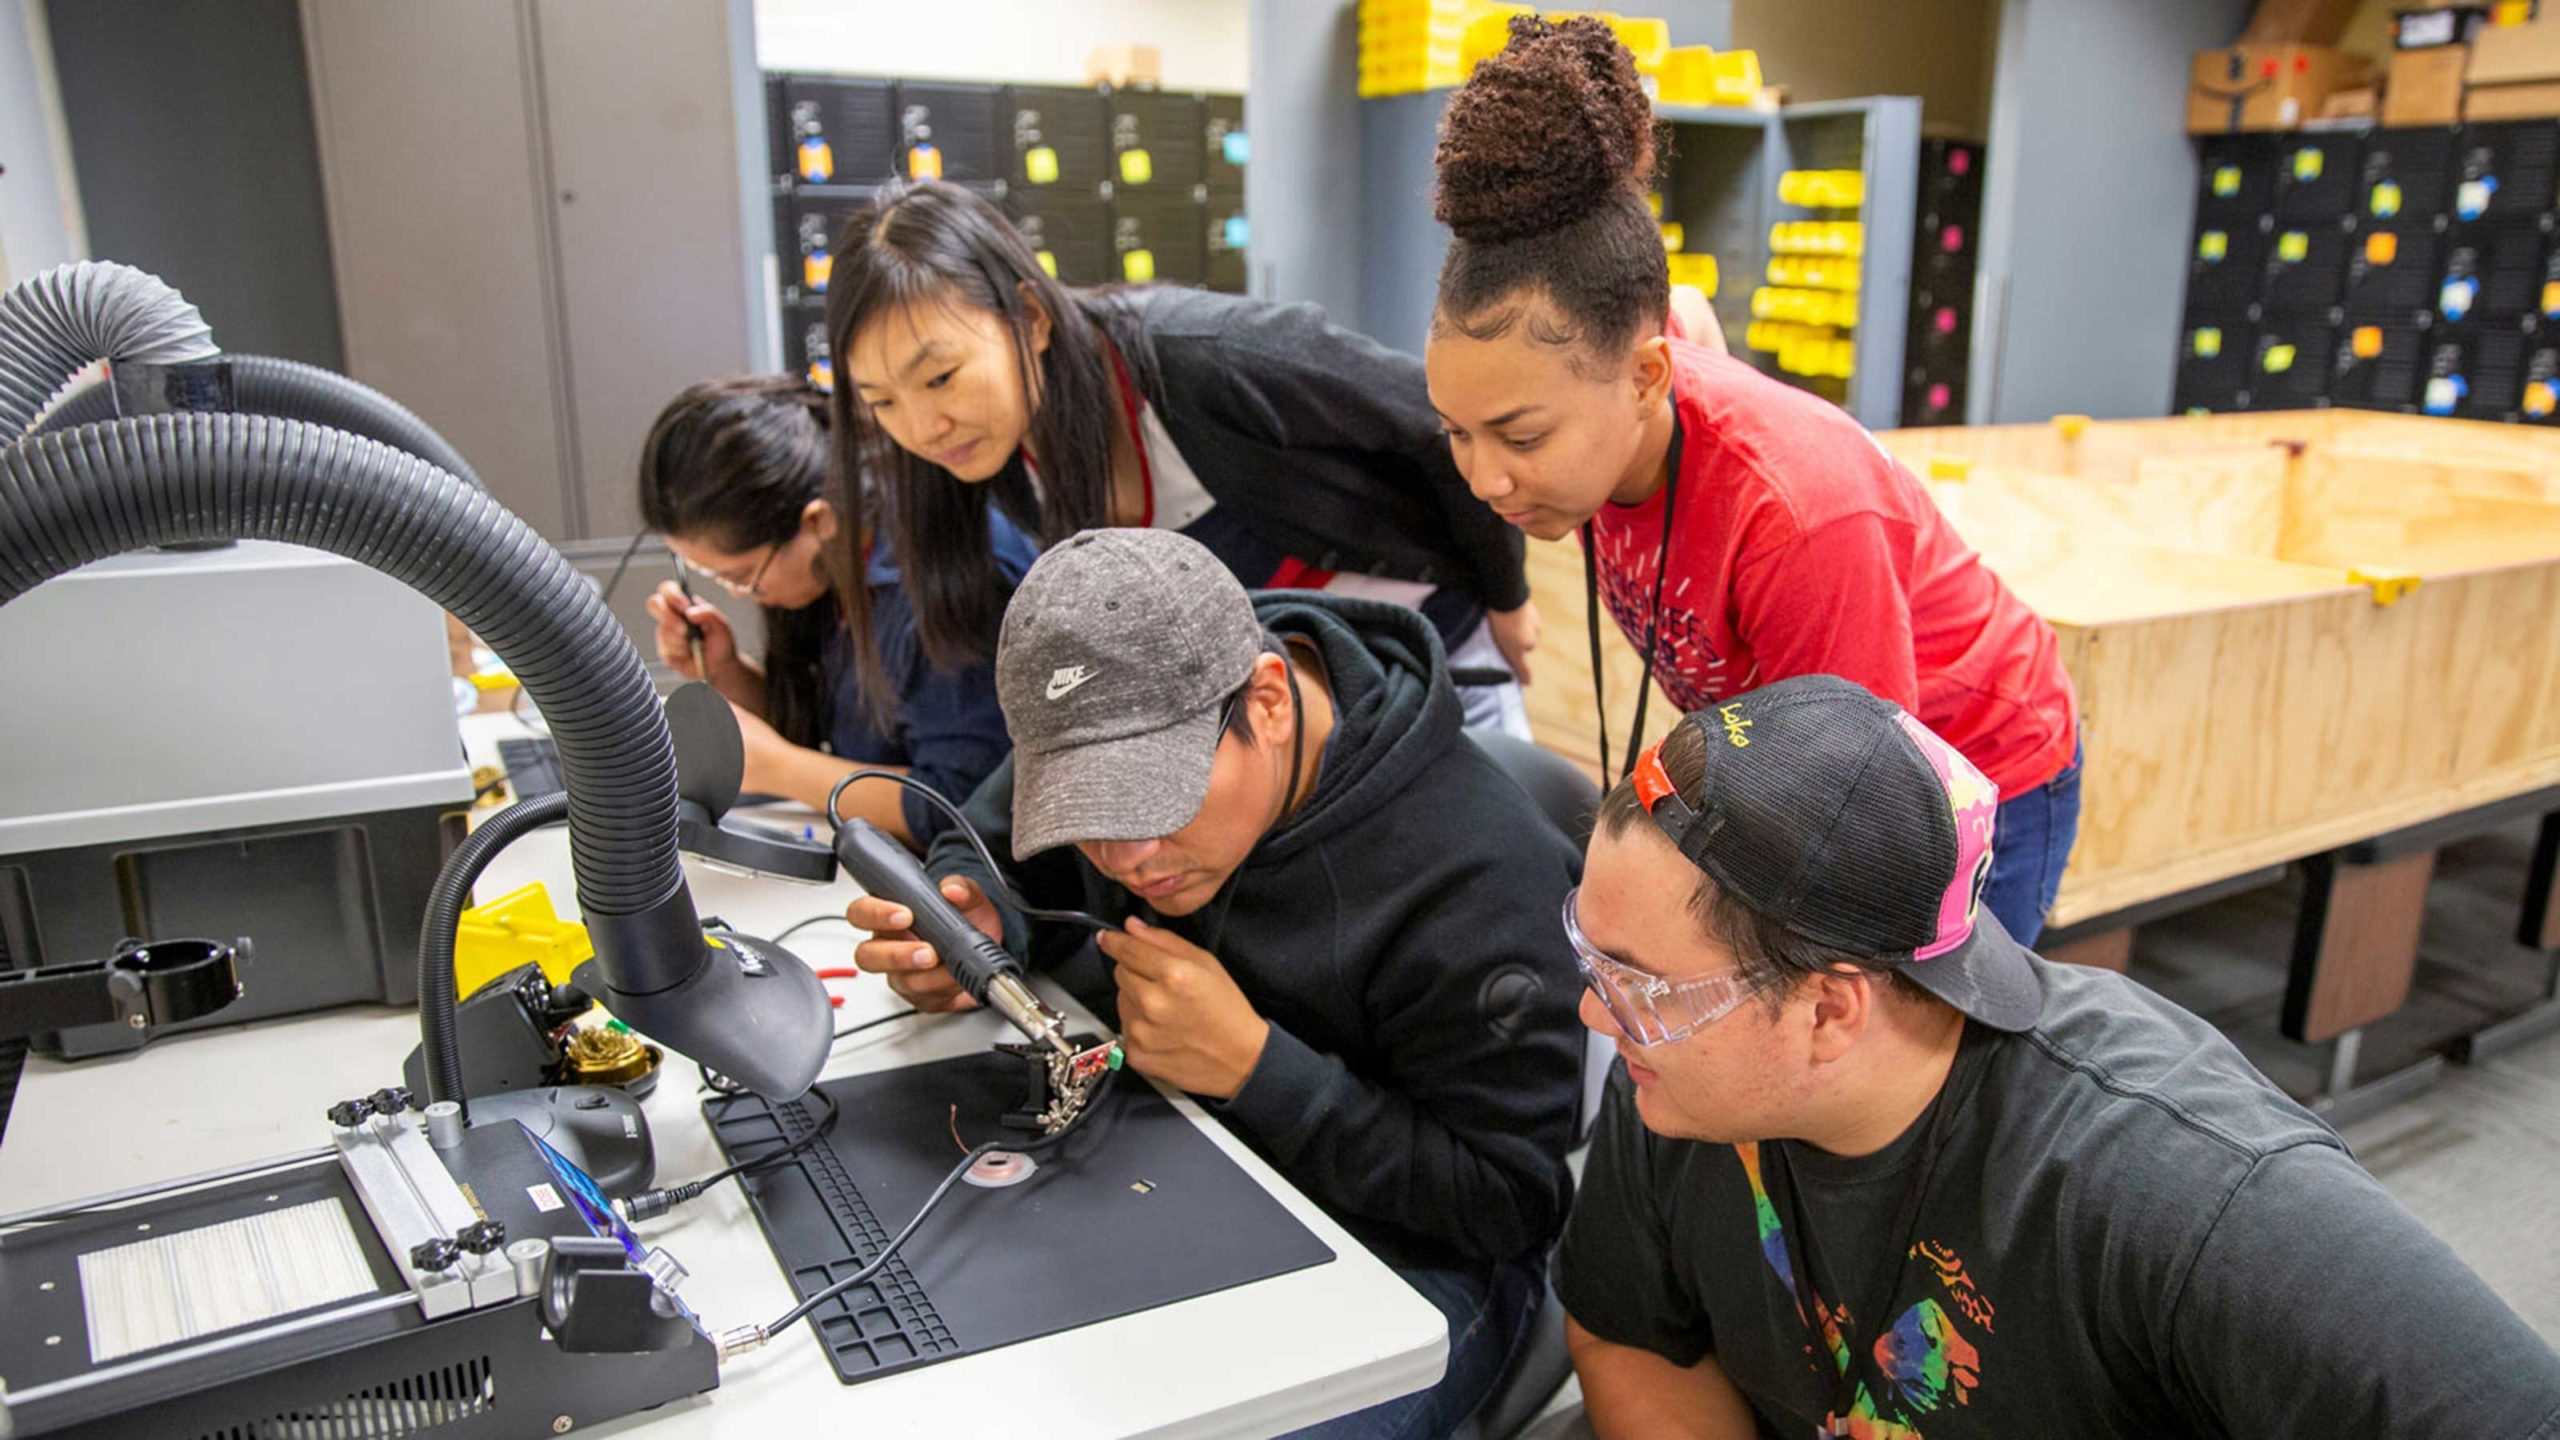 Five undergraduates work together soldering a small robot component at the ASU 2019 Robo Hackathon